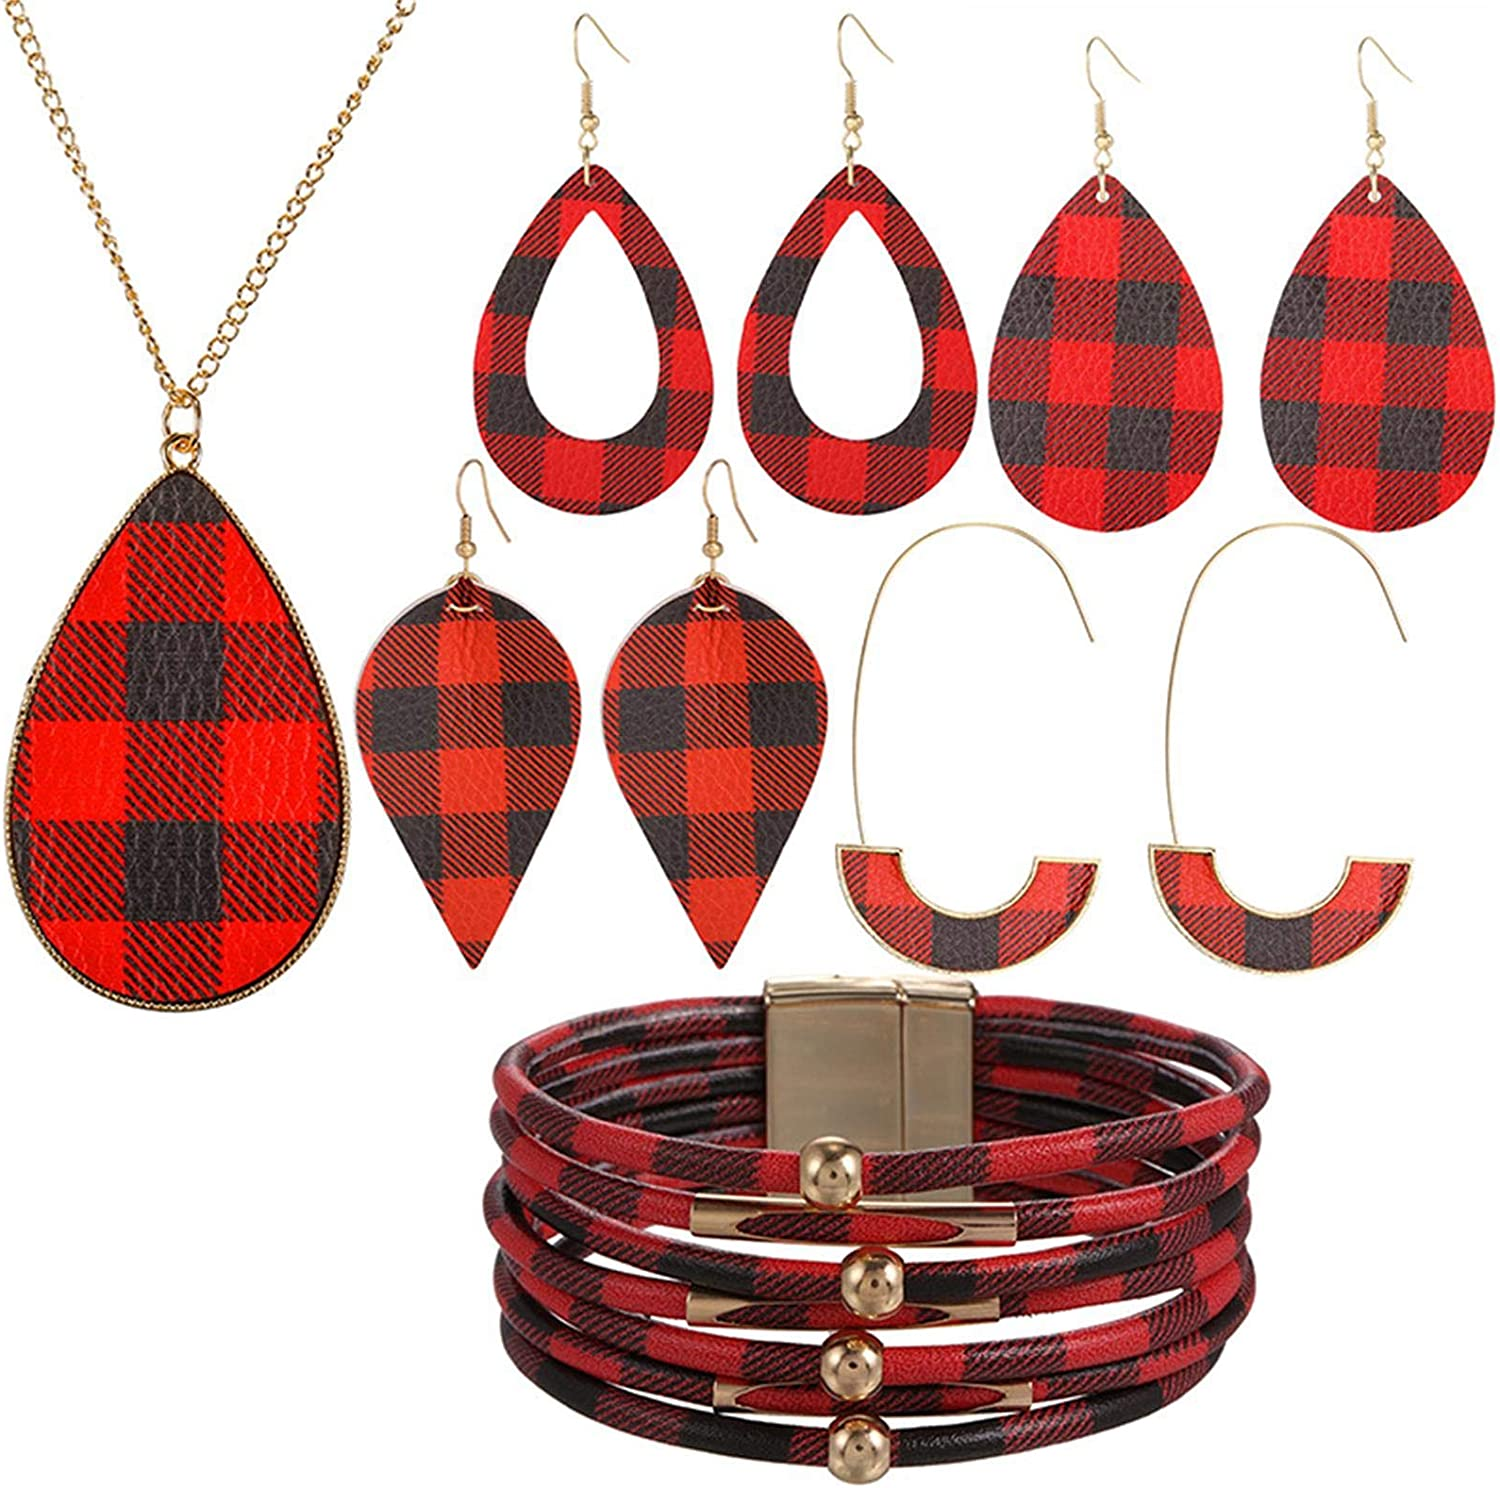 6 Pieces Christmas Plaid Print Jewelry Set Christmas Plaid Multi-Layer Bracelet Buffalo Plaid Faux Leather Dangle Earrings Waterdrop Pendant Necklace for Women Christmas Jewelry Accessories